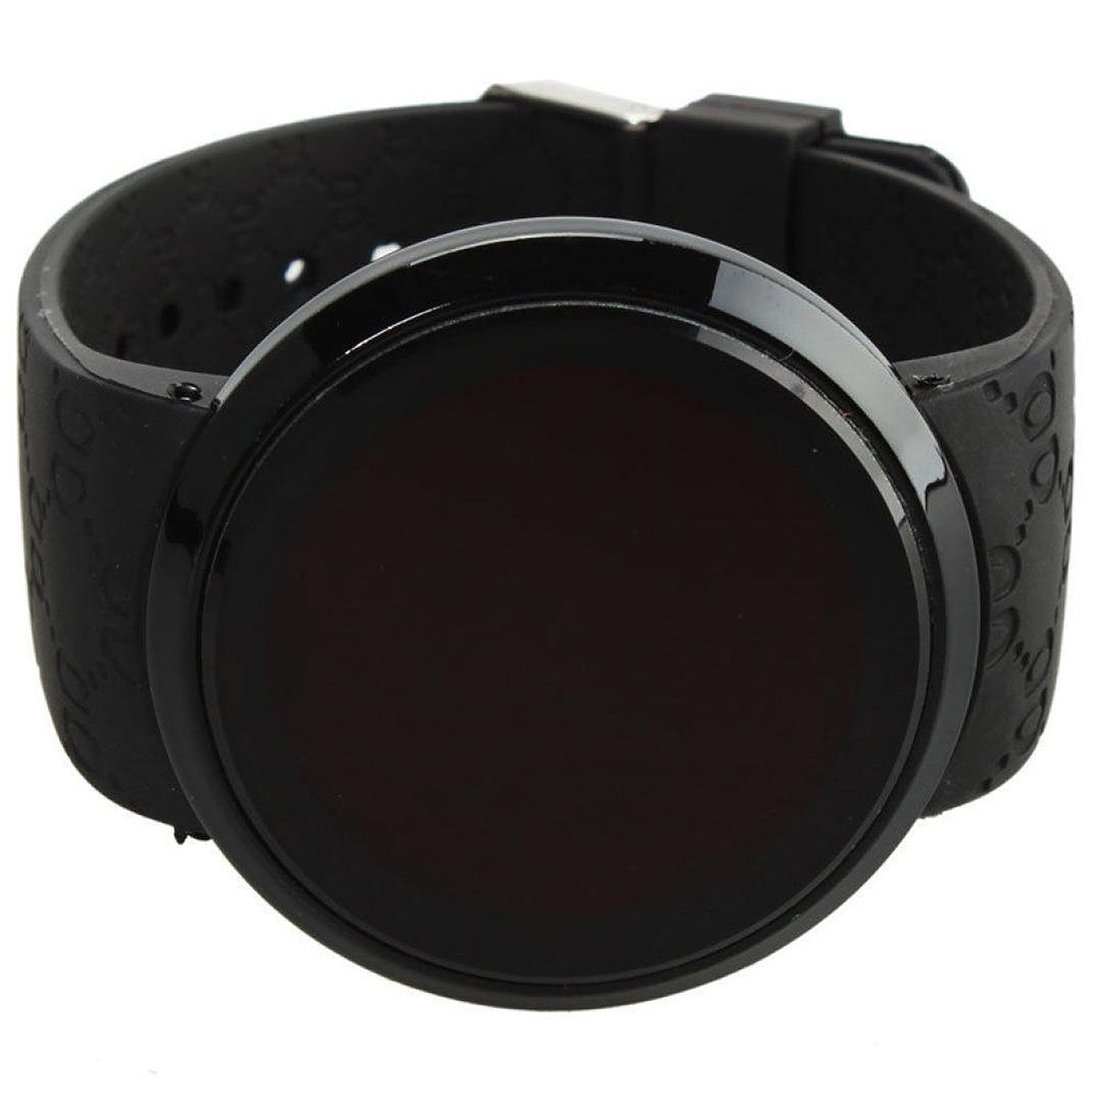 Amazon.com: Watch - SODIAL(R) Watch, Sunstone Fashion Men LED Touch Screen Date Day Silicone Bracelet Watch Digital LED Touch Watch Black: Watches